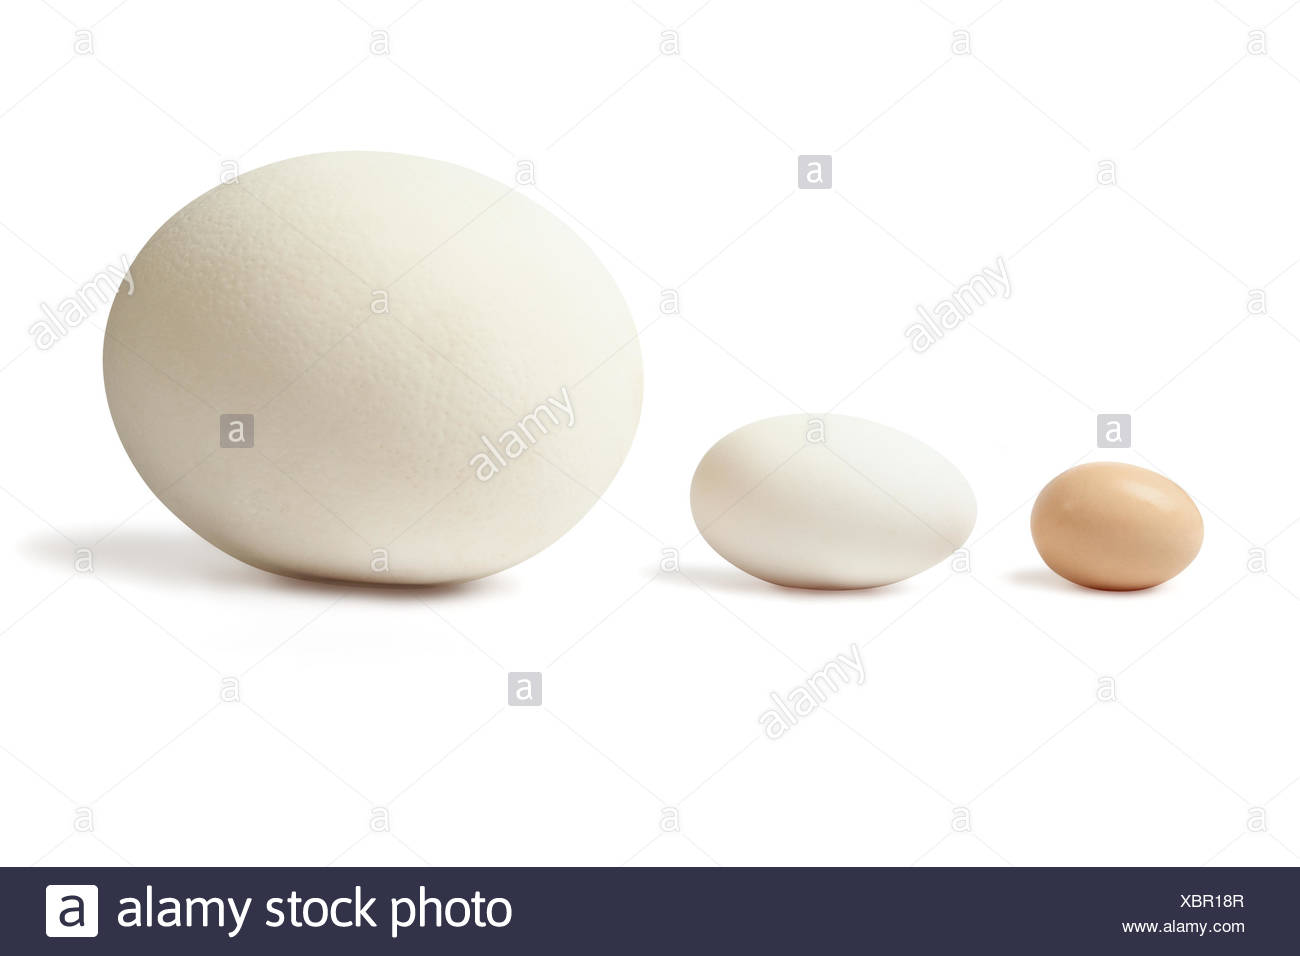 Thre eggs lined - Stock Image